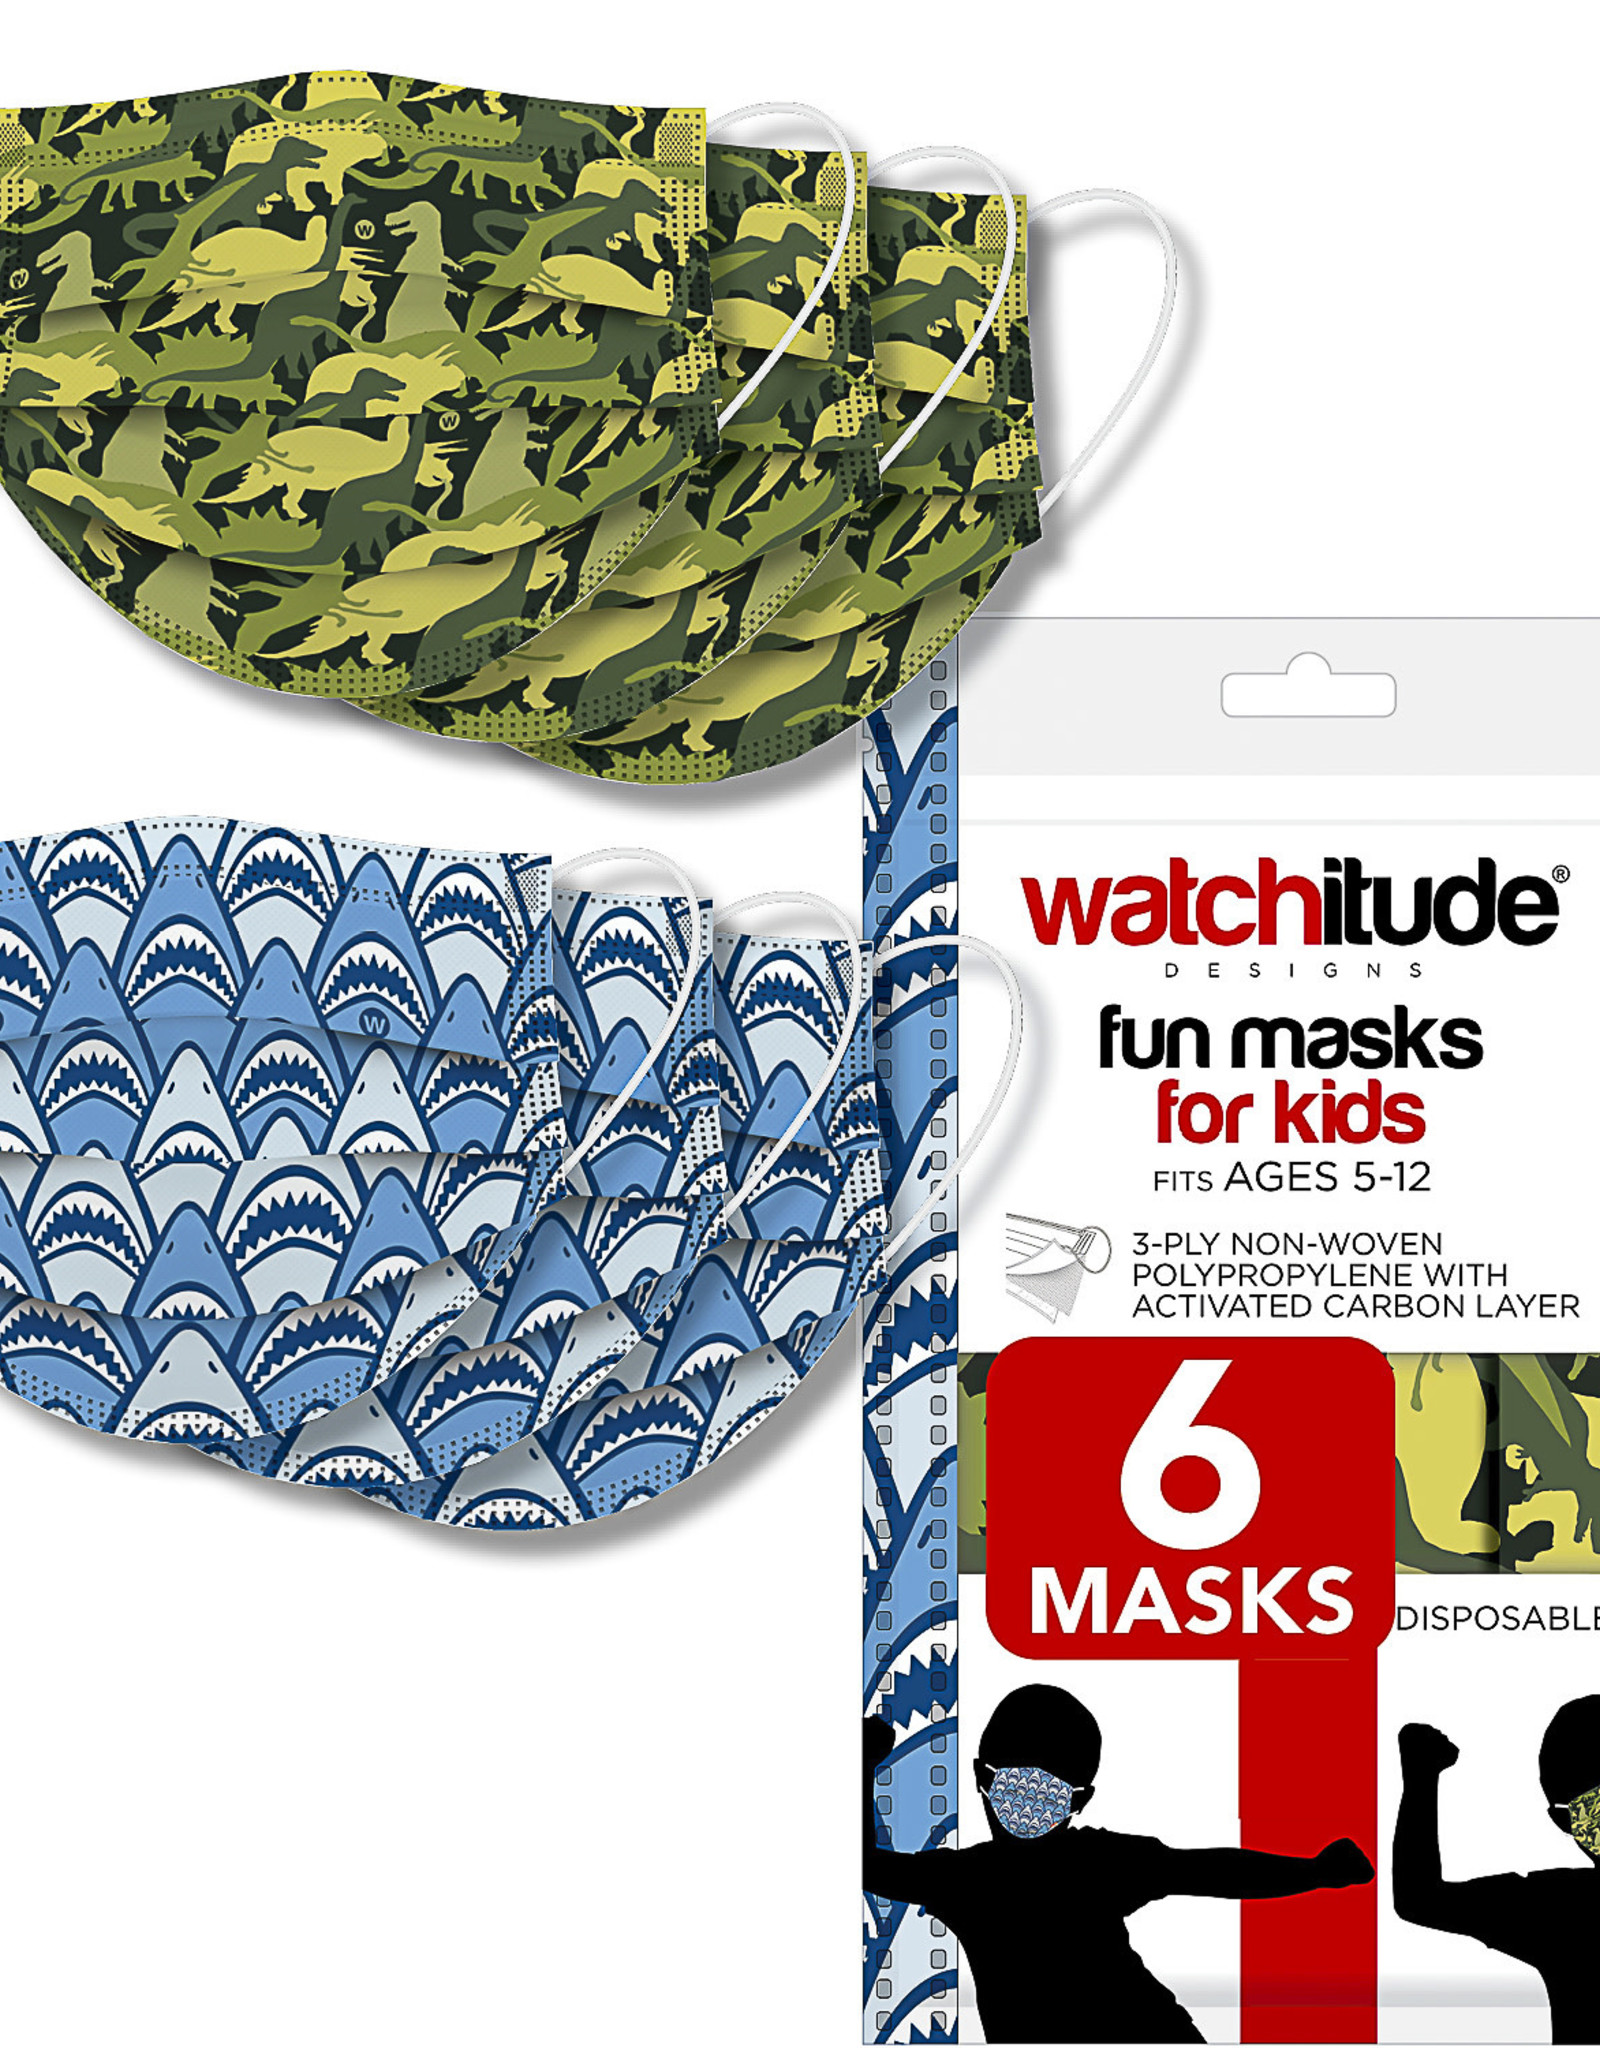 Watchitude Child's Mask: SHARK FRENZY & DINO CAMO